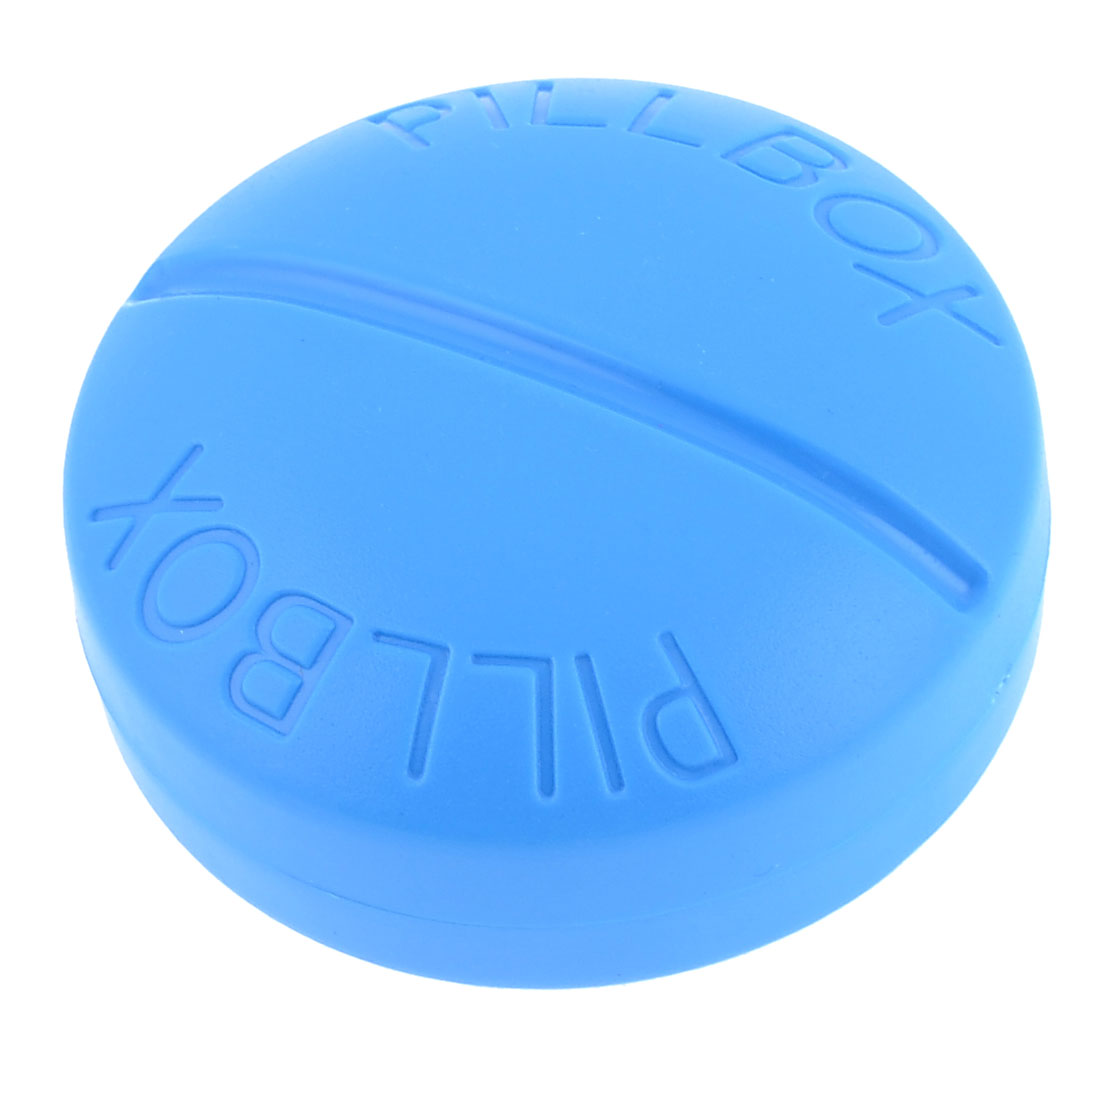 Home Blue Round Plastic 4 Sections Pill Tablet Box Holder Container